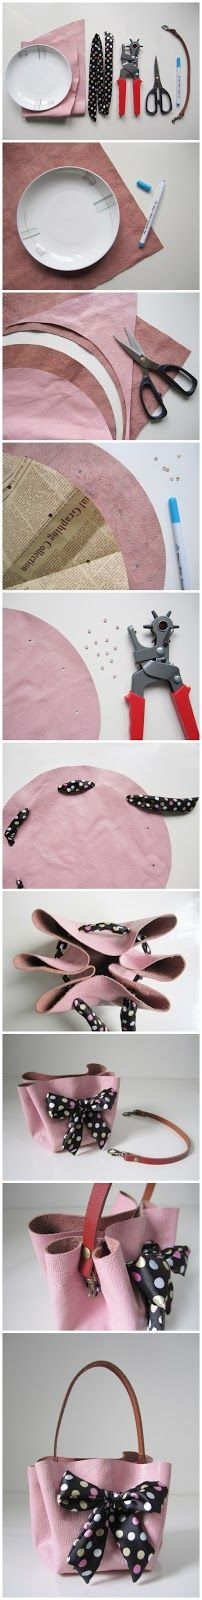 DIY and Crafts picture | DIY and Crafts photos